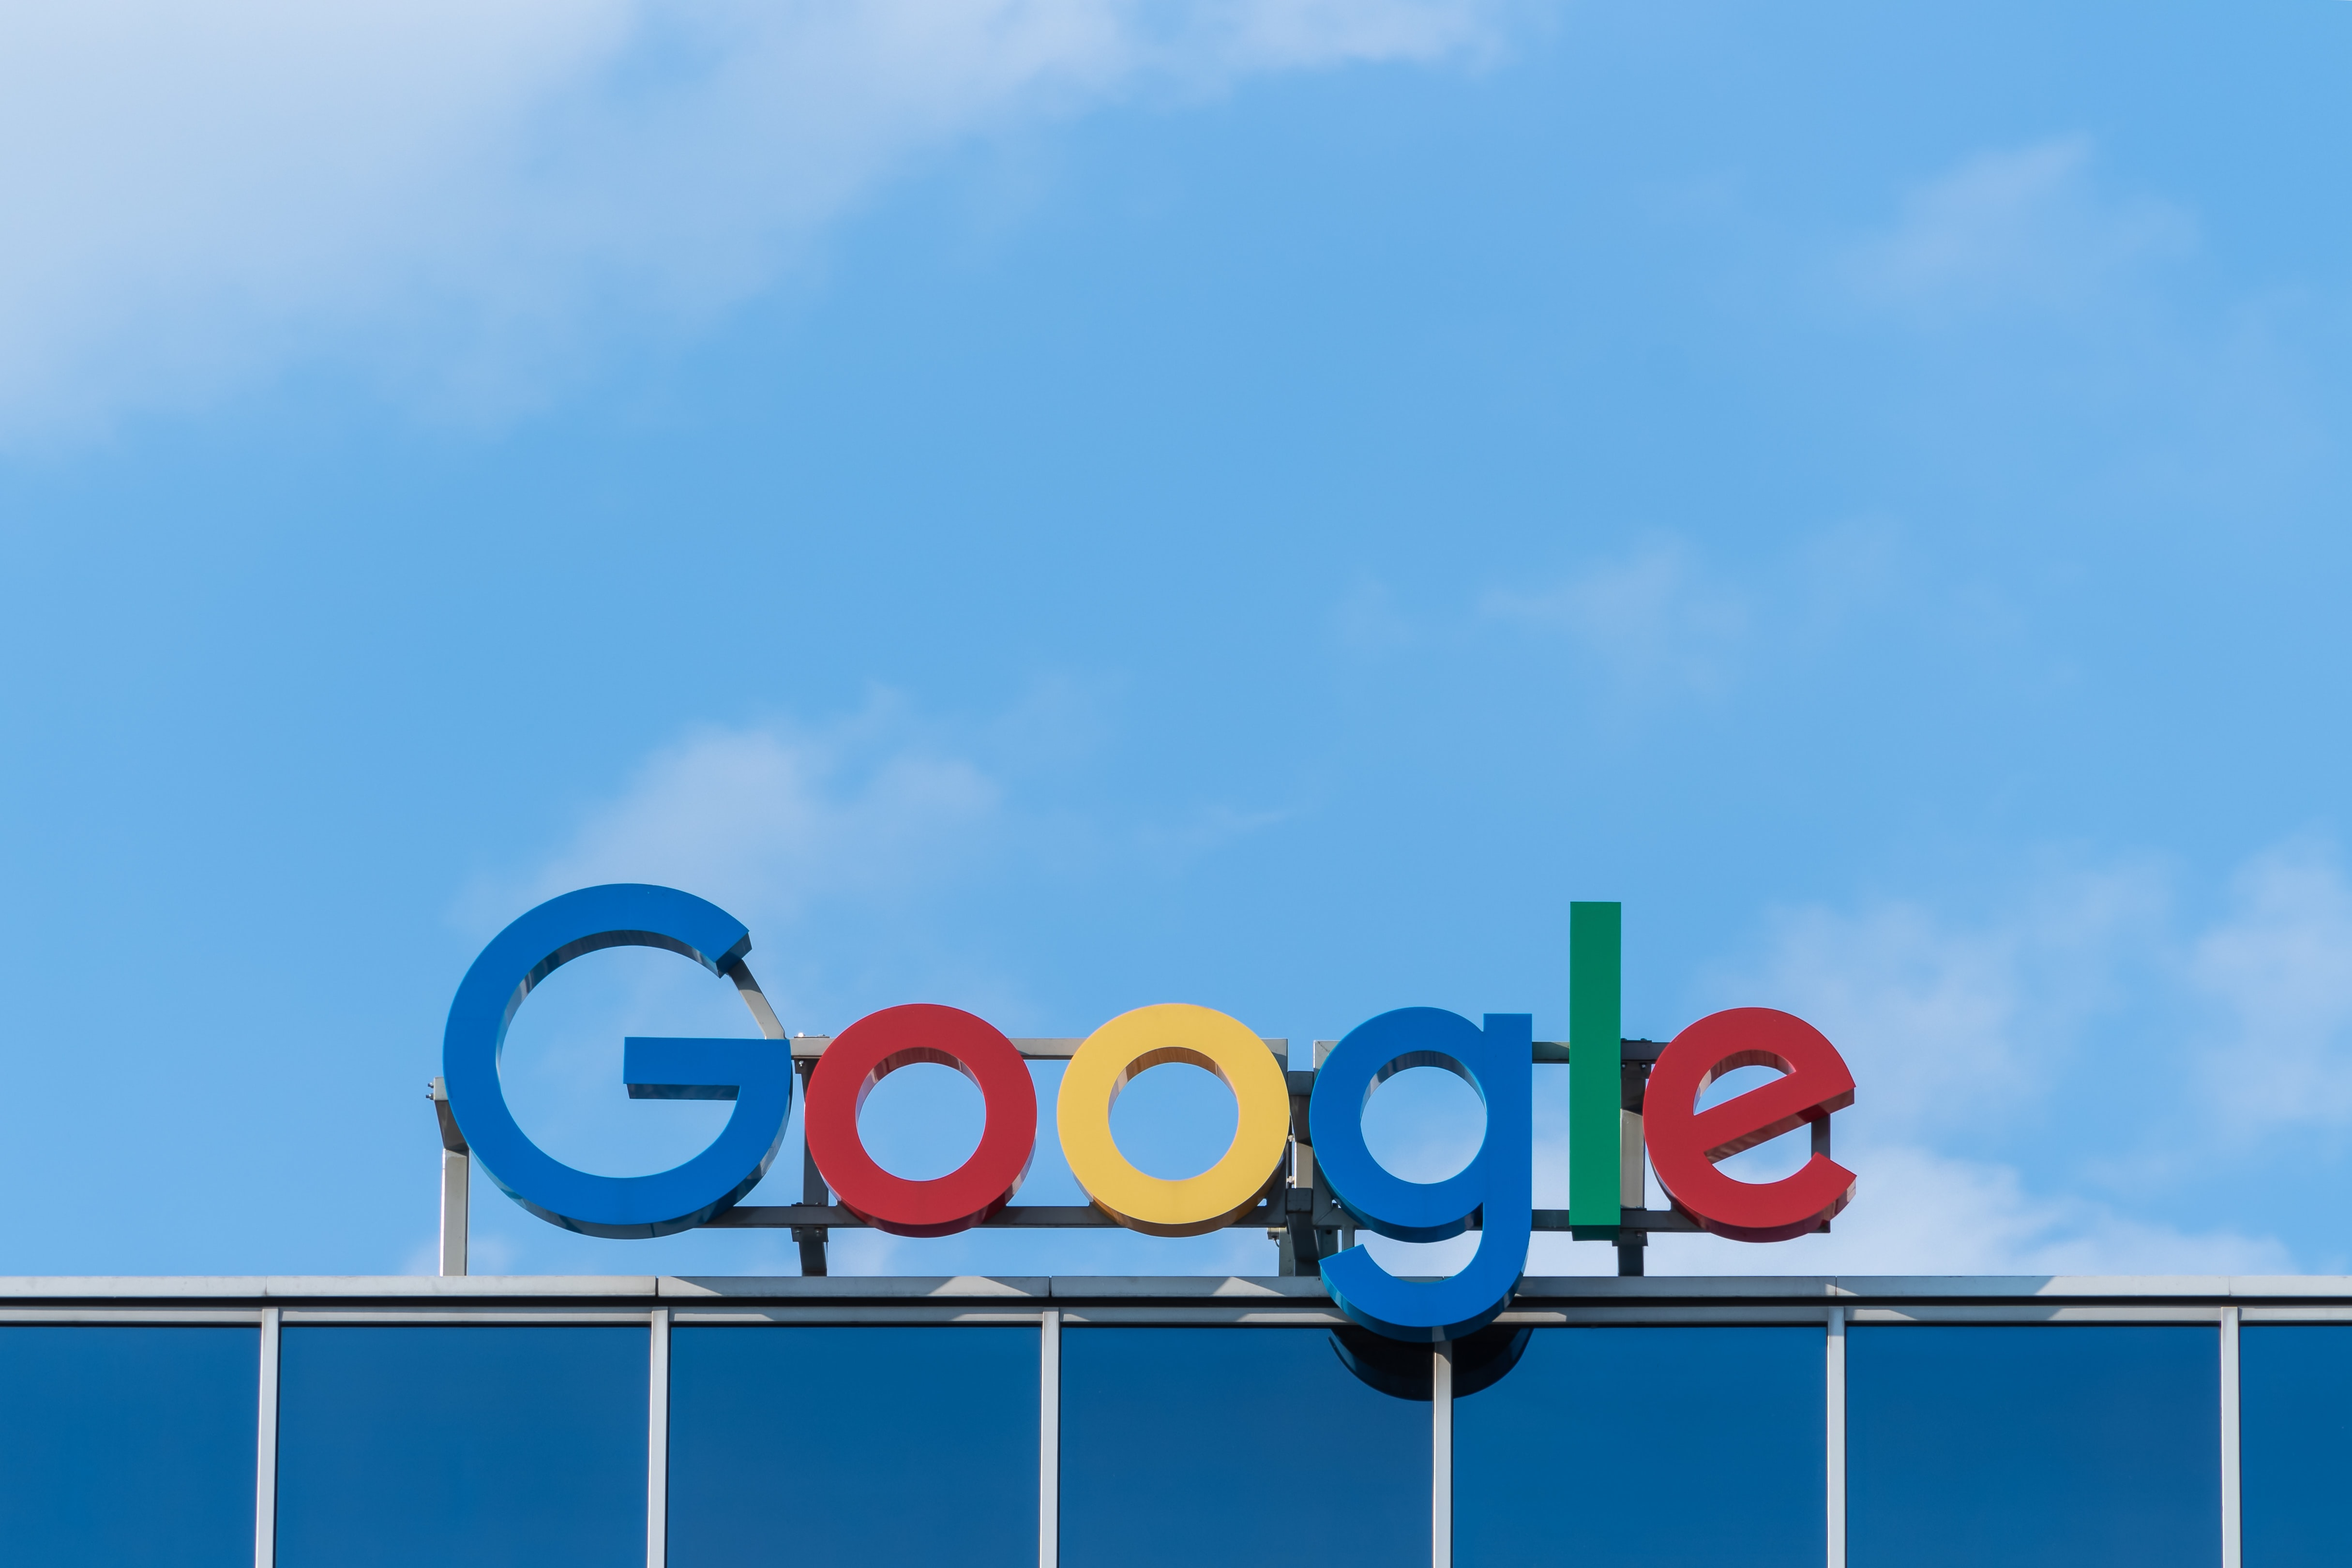 Google, Mayo Clinic Team Up to Implement Medical AI Technology